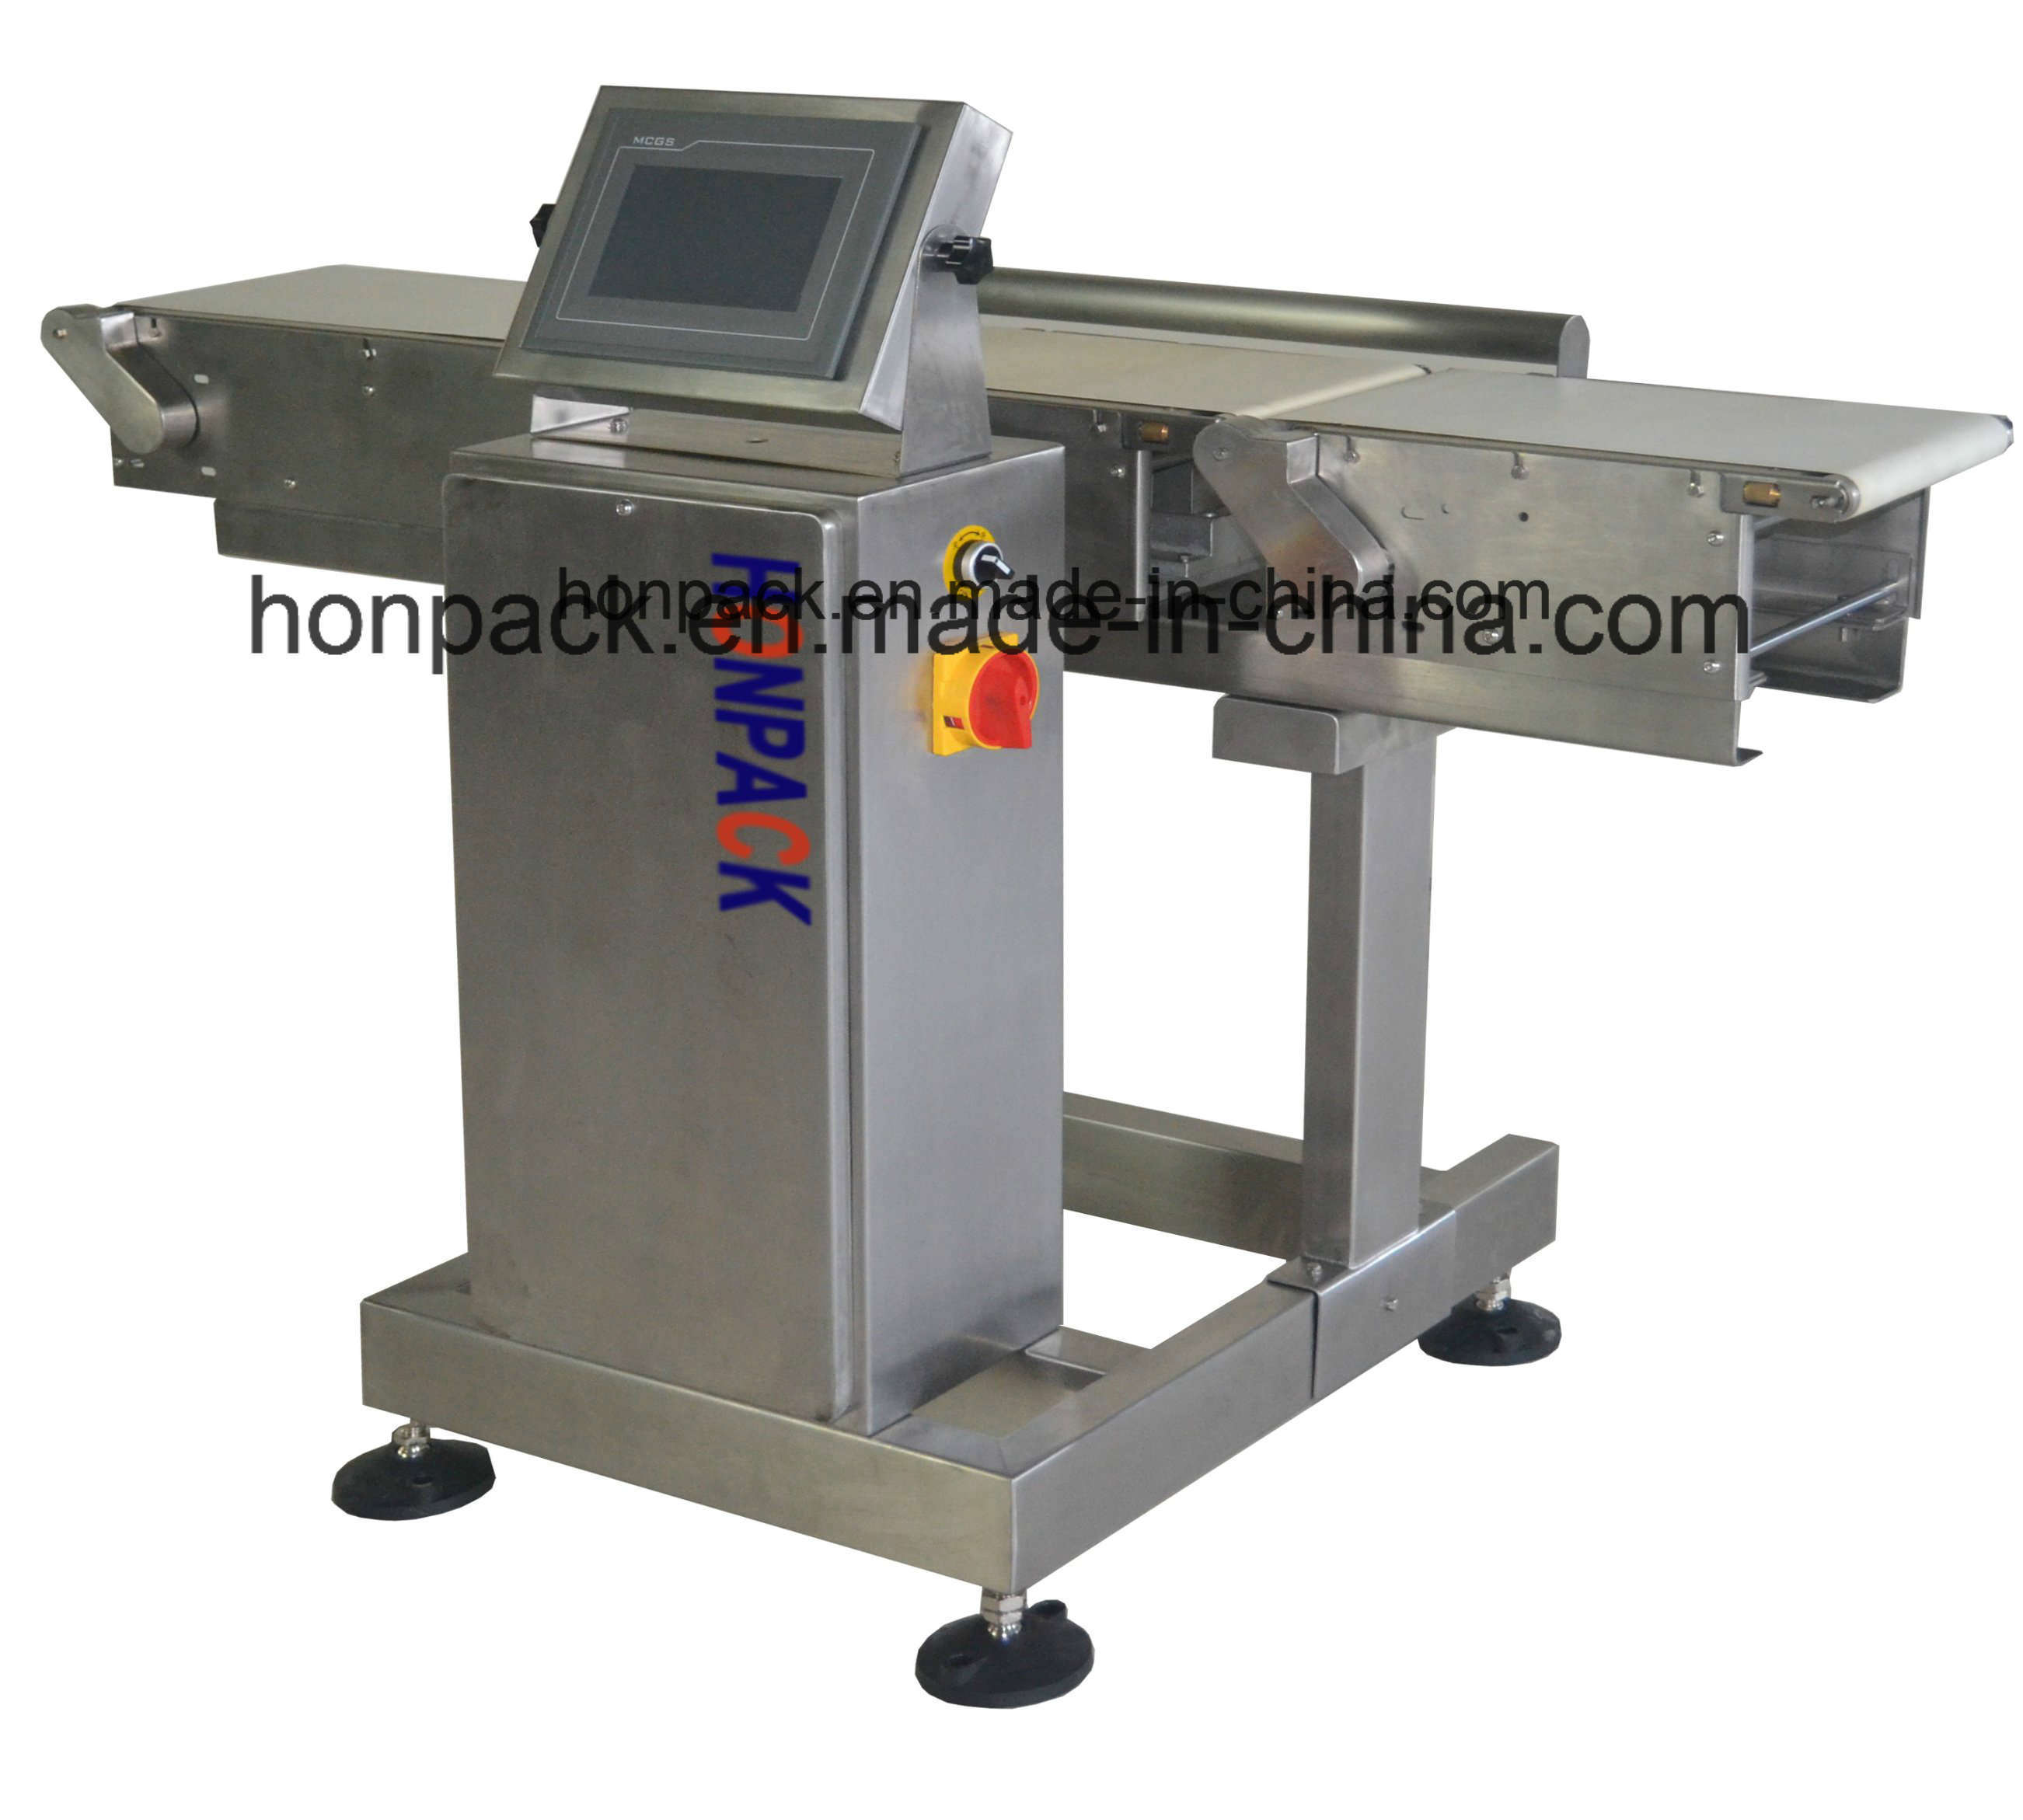 Checkweigher HCW4020